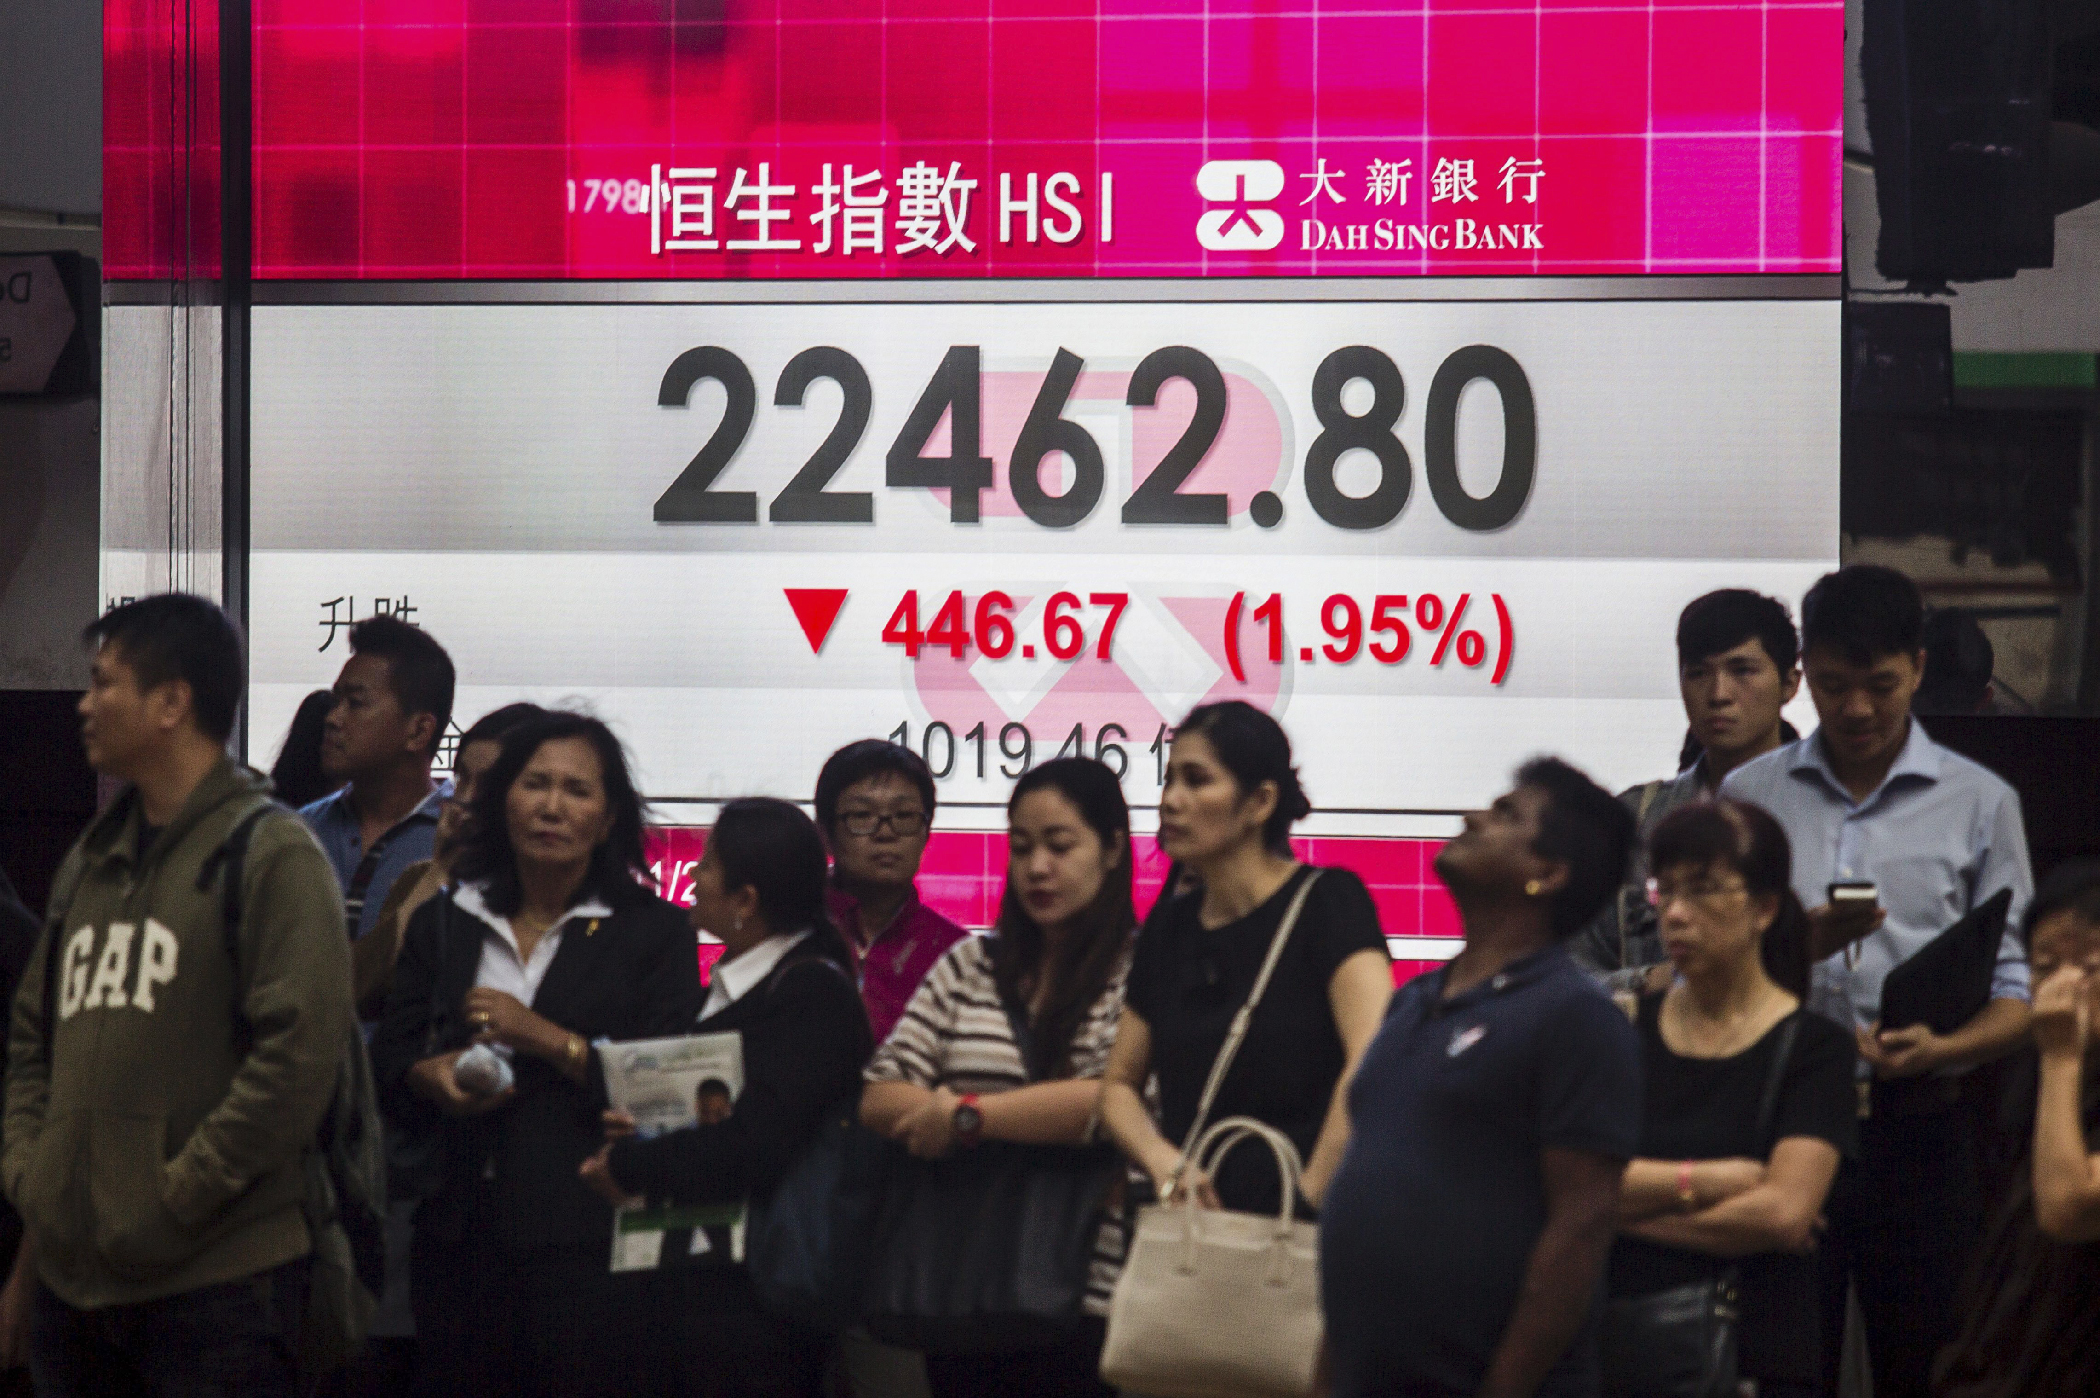 "Asian markets were up and running during the wee hours of the morning in the U.S., when Trump's gain on electoral college votes surpassed Clinton's. Hong Kong's Hang Seng index <a href=""http://www.latimes.com/nation/politics/trailguide/la-na-election-day-2016-asian-markets-slump-in-reaction-to-1478675294-htmlstory.html"" target=""_blank"">fell to 2.6%.</a>"